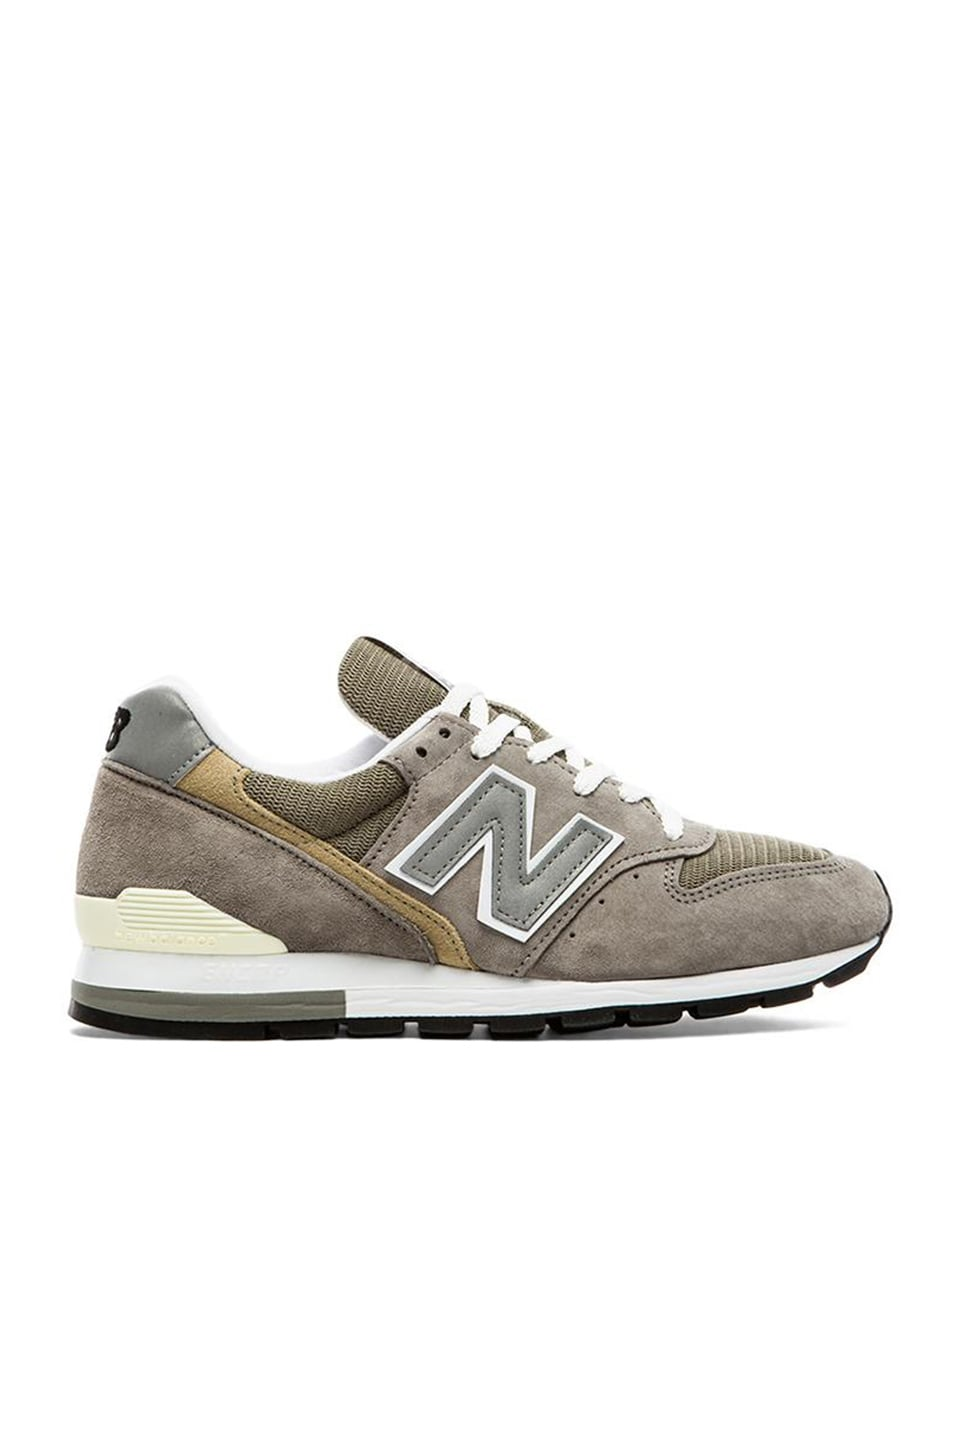 Made in USA M996 by New Balance